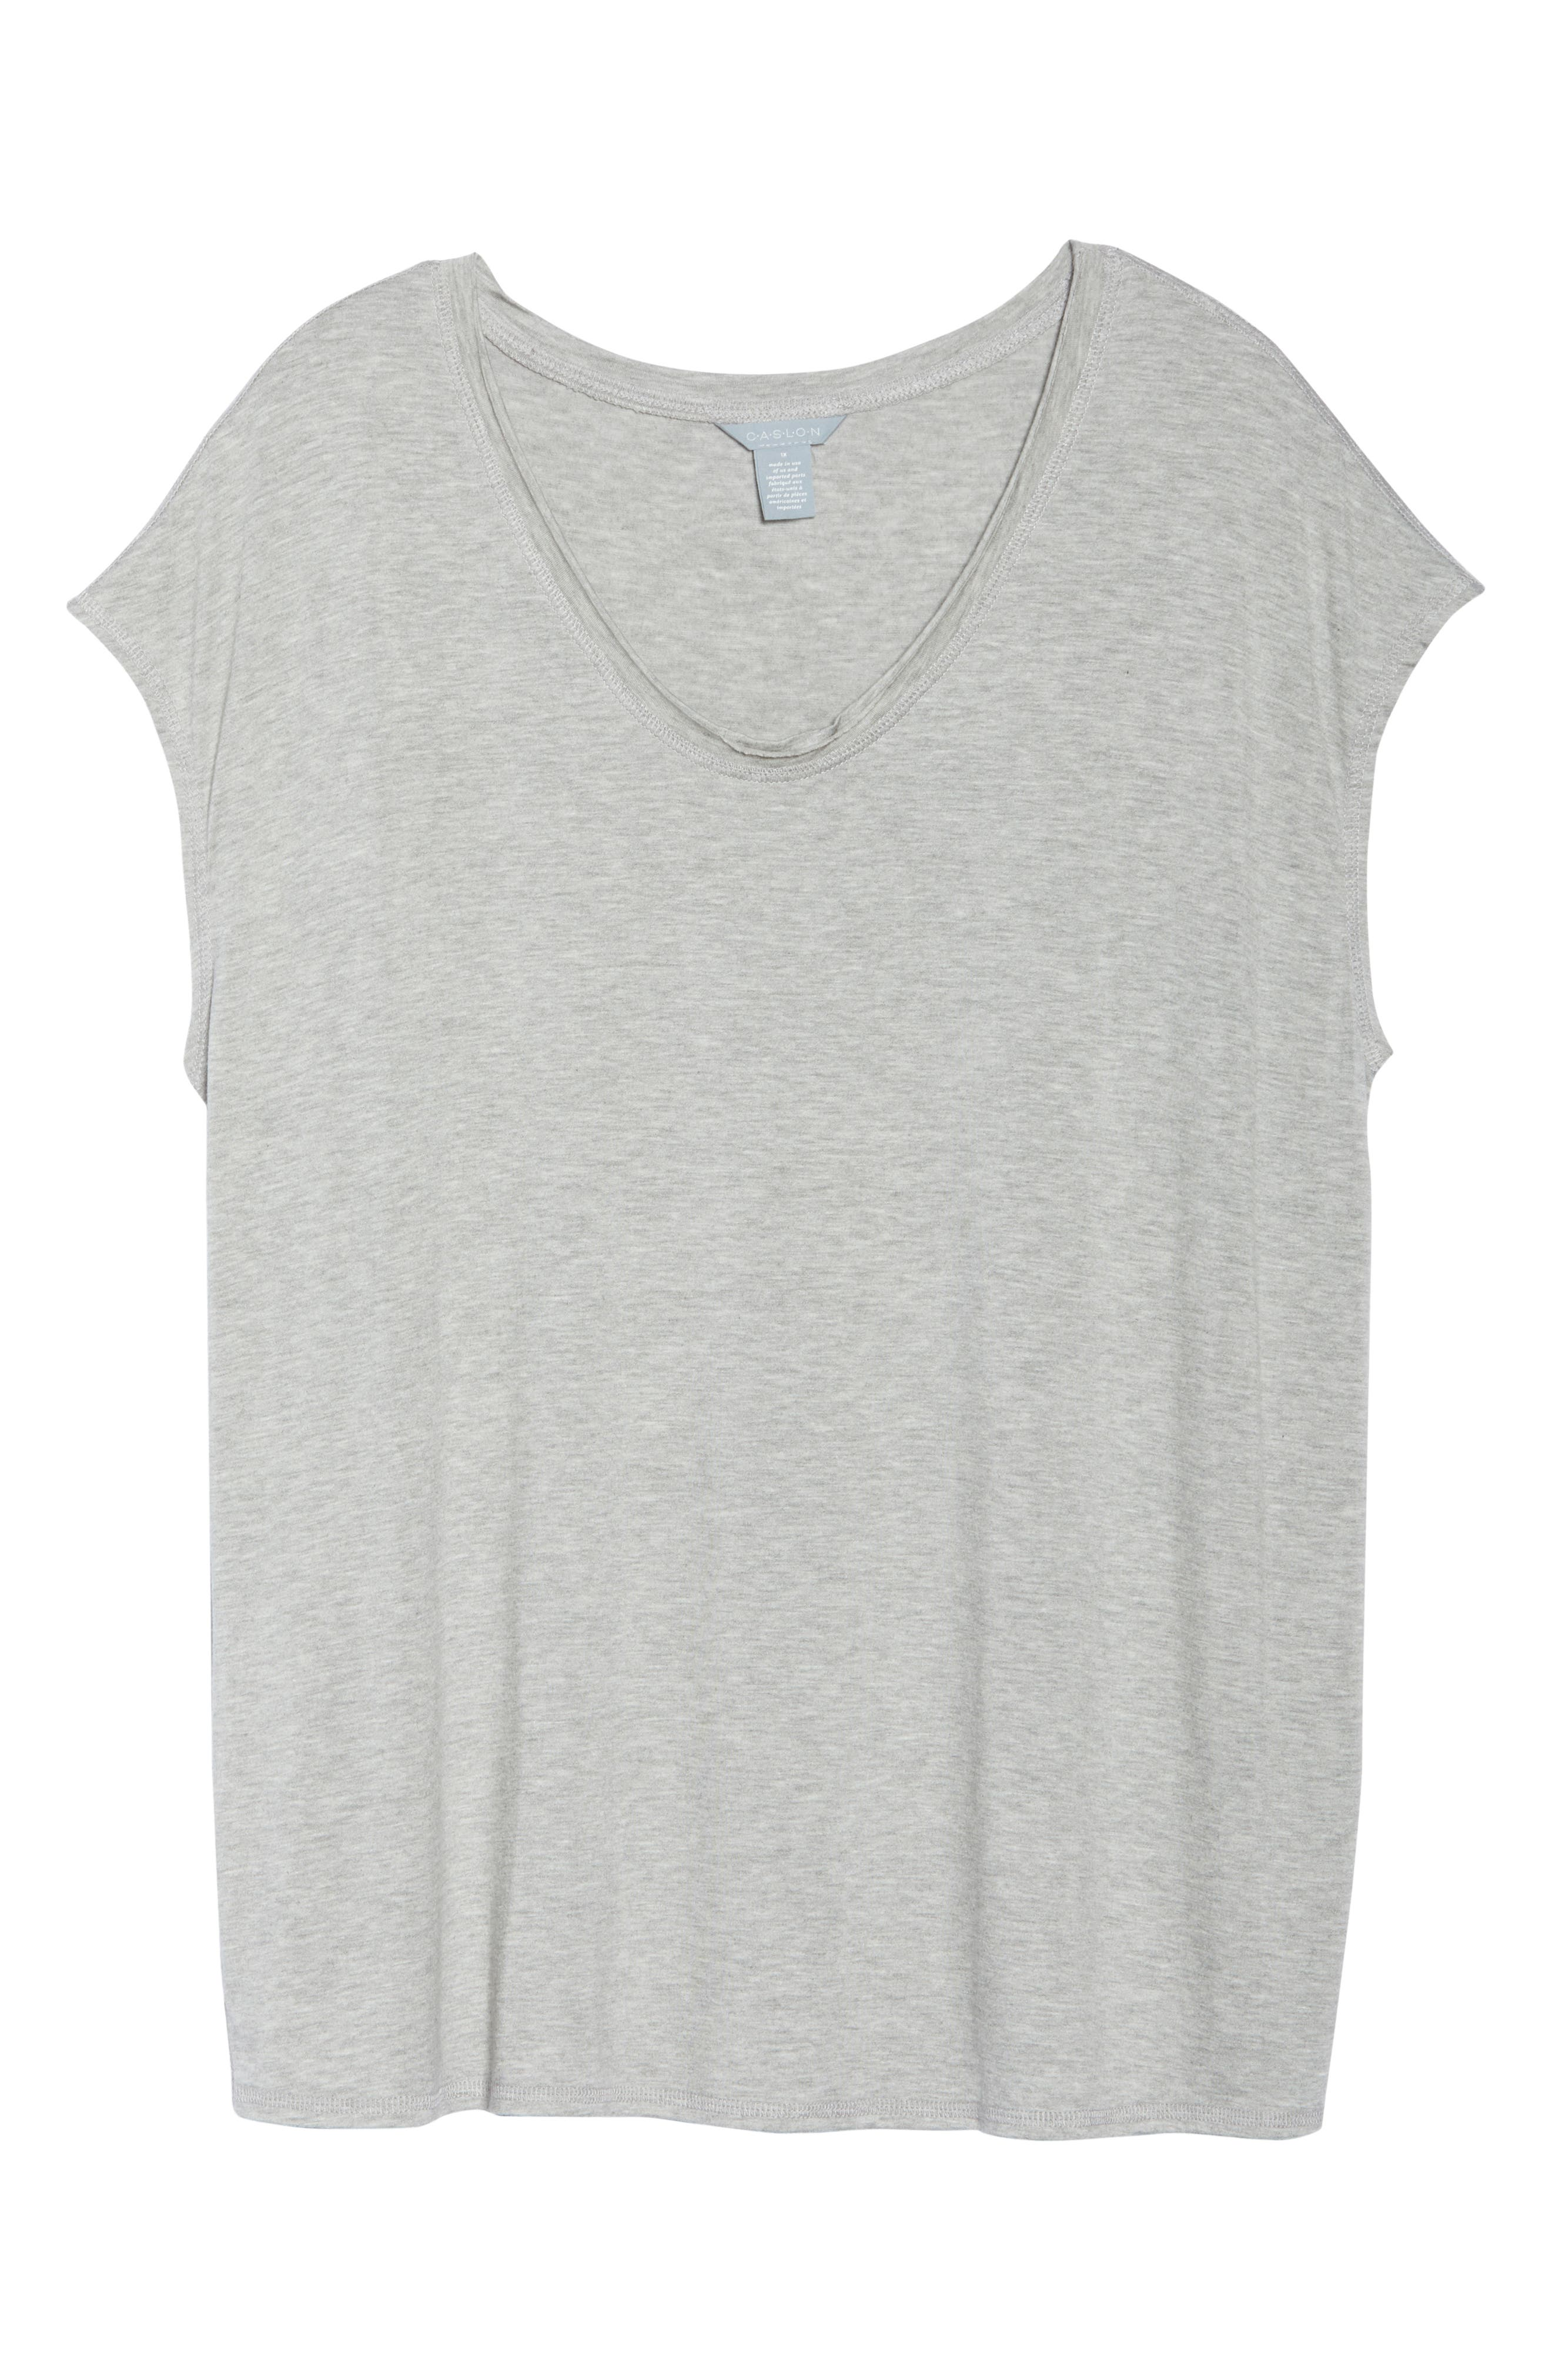 Off-Duty Stretch Knit Top,                             Alternate thumbnail 7, color,                             Grey Heather